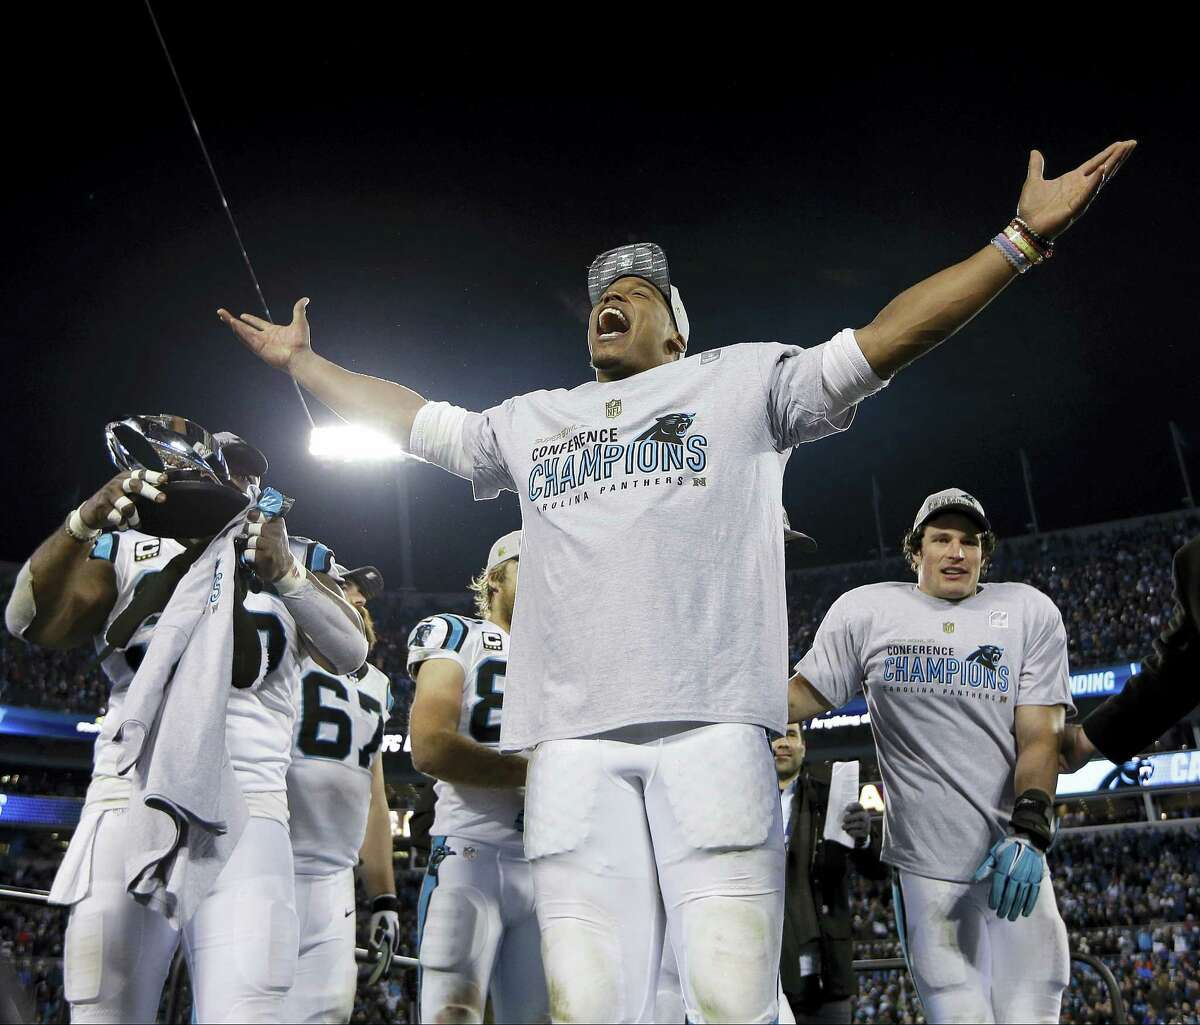 Panthers quarterback Cam Newton celebrates after his team's win in the NFC Championship game. Register columnist Chip Malafronte says if the Panthers win Super Bowl 50, they deserve to be in the conversation as one of the greatest teams in NFL history.